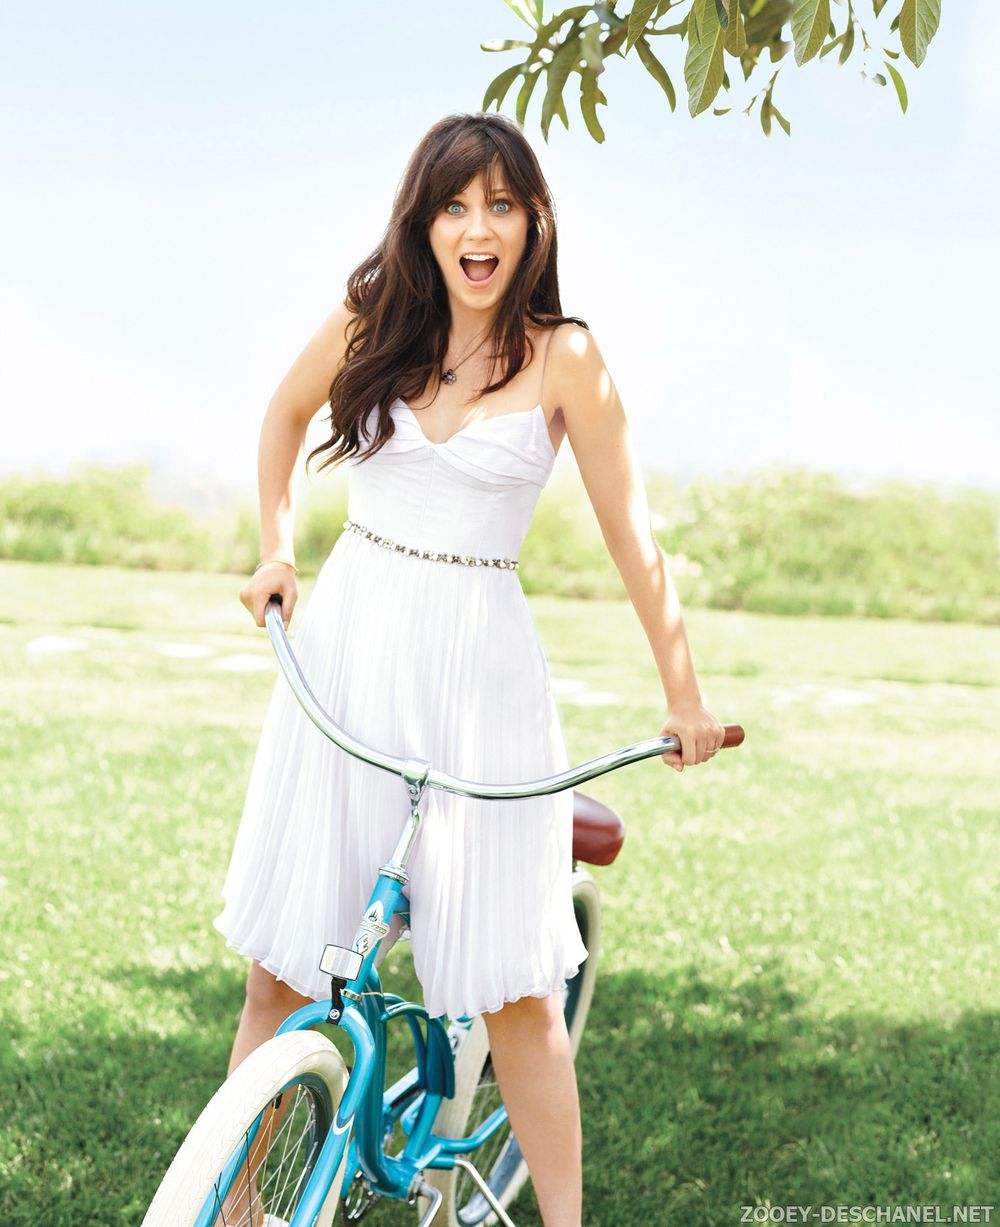 I want to be her  Zooey Deschanel Barefoot